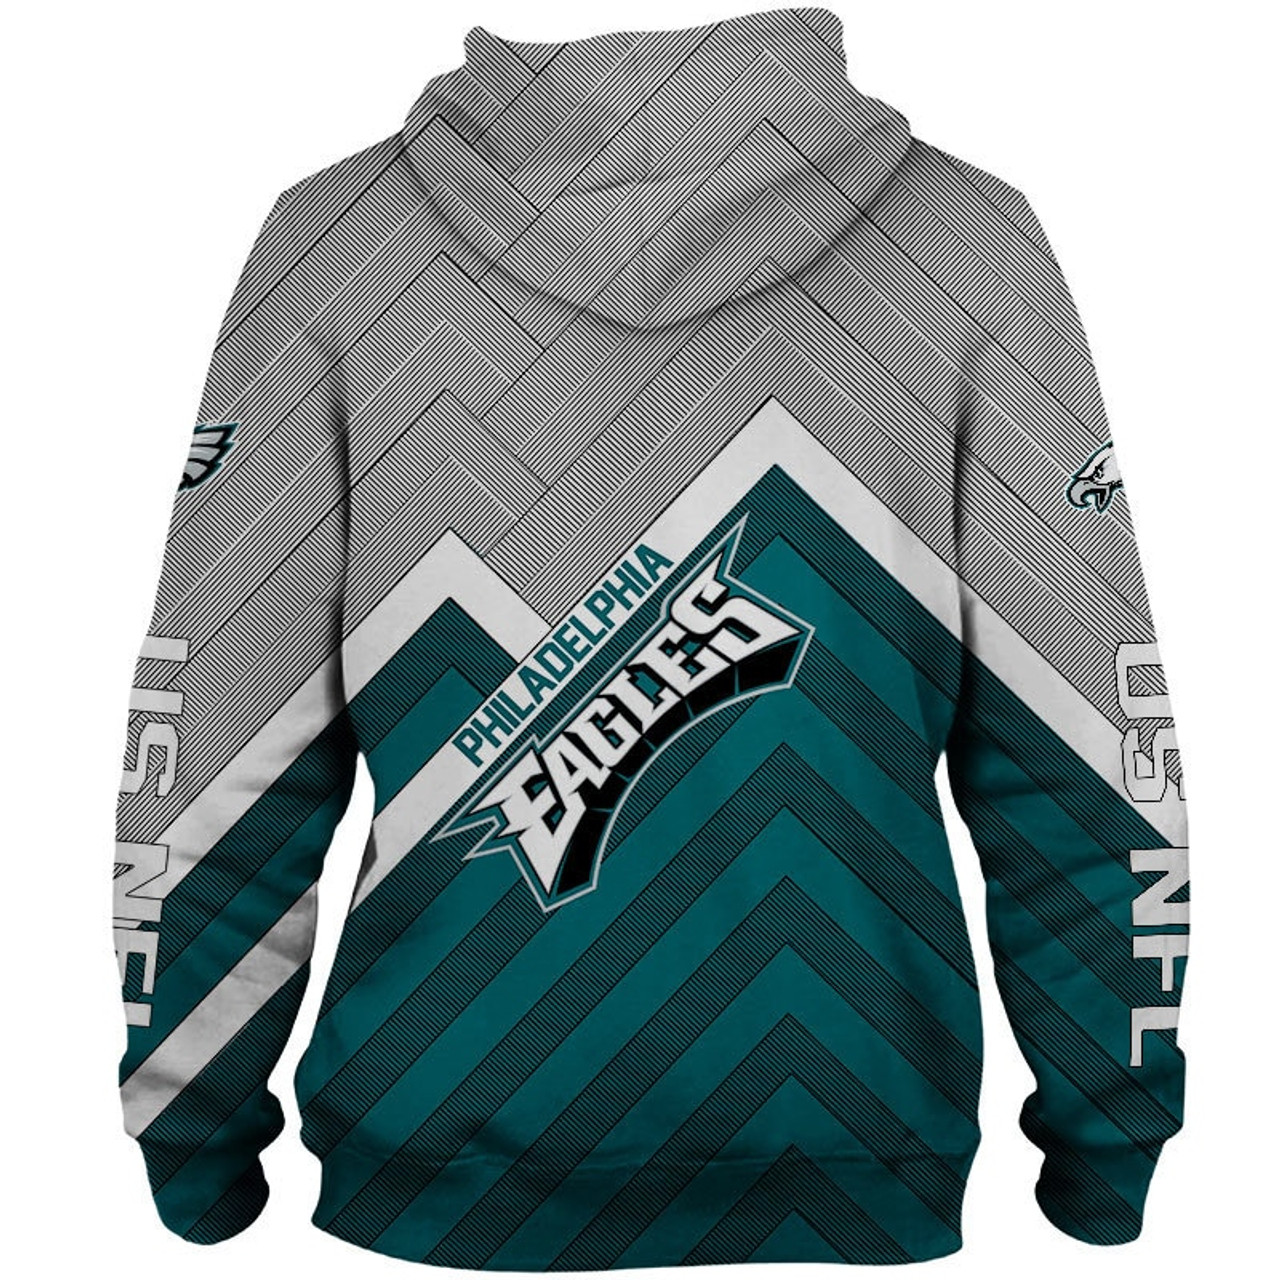 sneakers for cheap c7ba0 4f29b **(NEW-OFFICIAL-N.F.L.PHILADELPHIA-EAGLES-ZIPPERED-HOODIES/3D-CUSTOM-EAGLES-LOGOS  & OFFICIAL-TEAM-COLORS/NICE-3D-GRAPHIC-PRINTED-DOUBLE-SIDED/ALL-OVER...